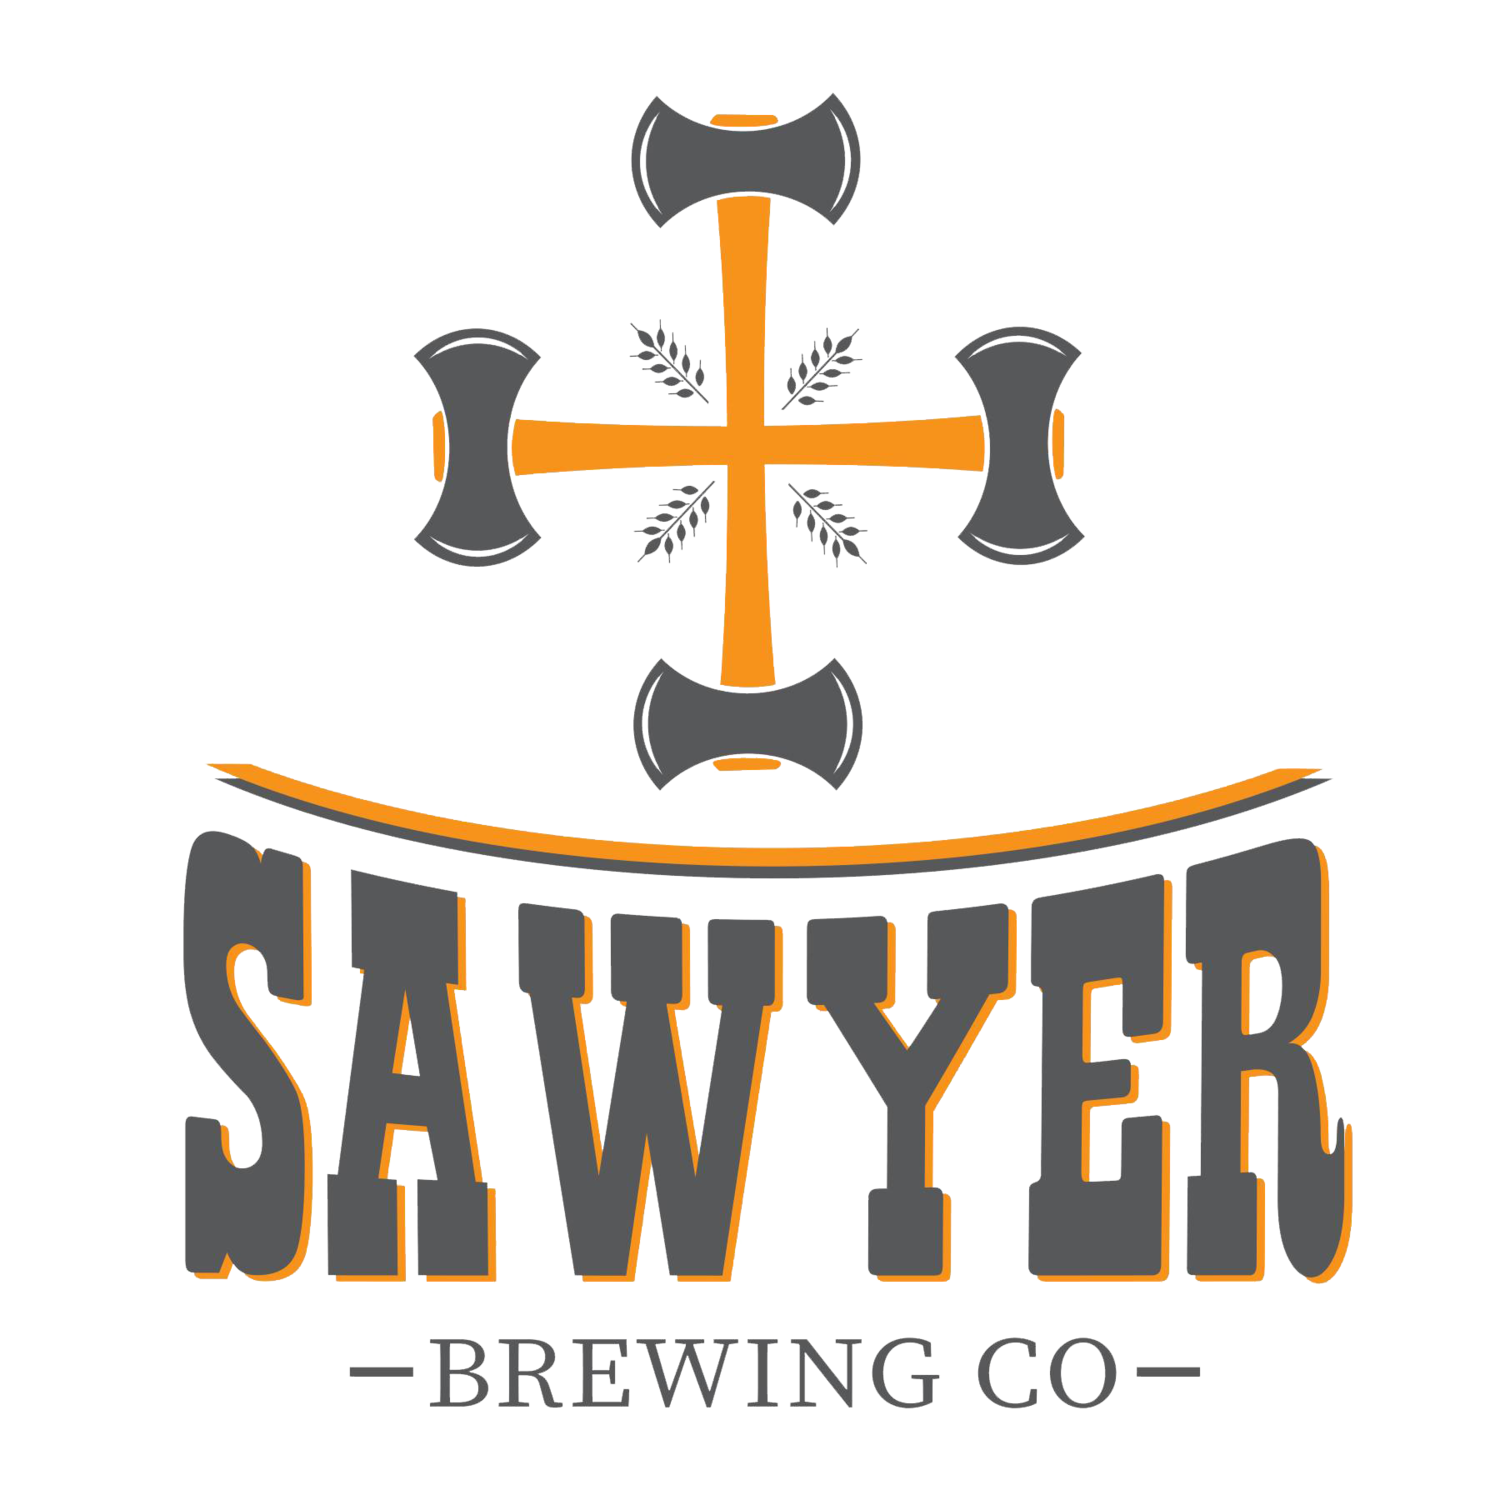 Sawyer Brewing Co.